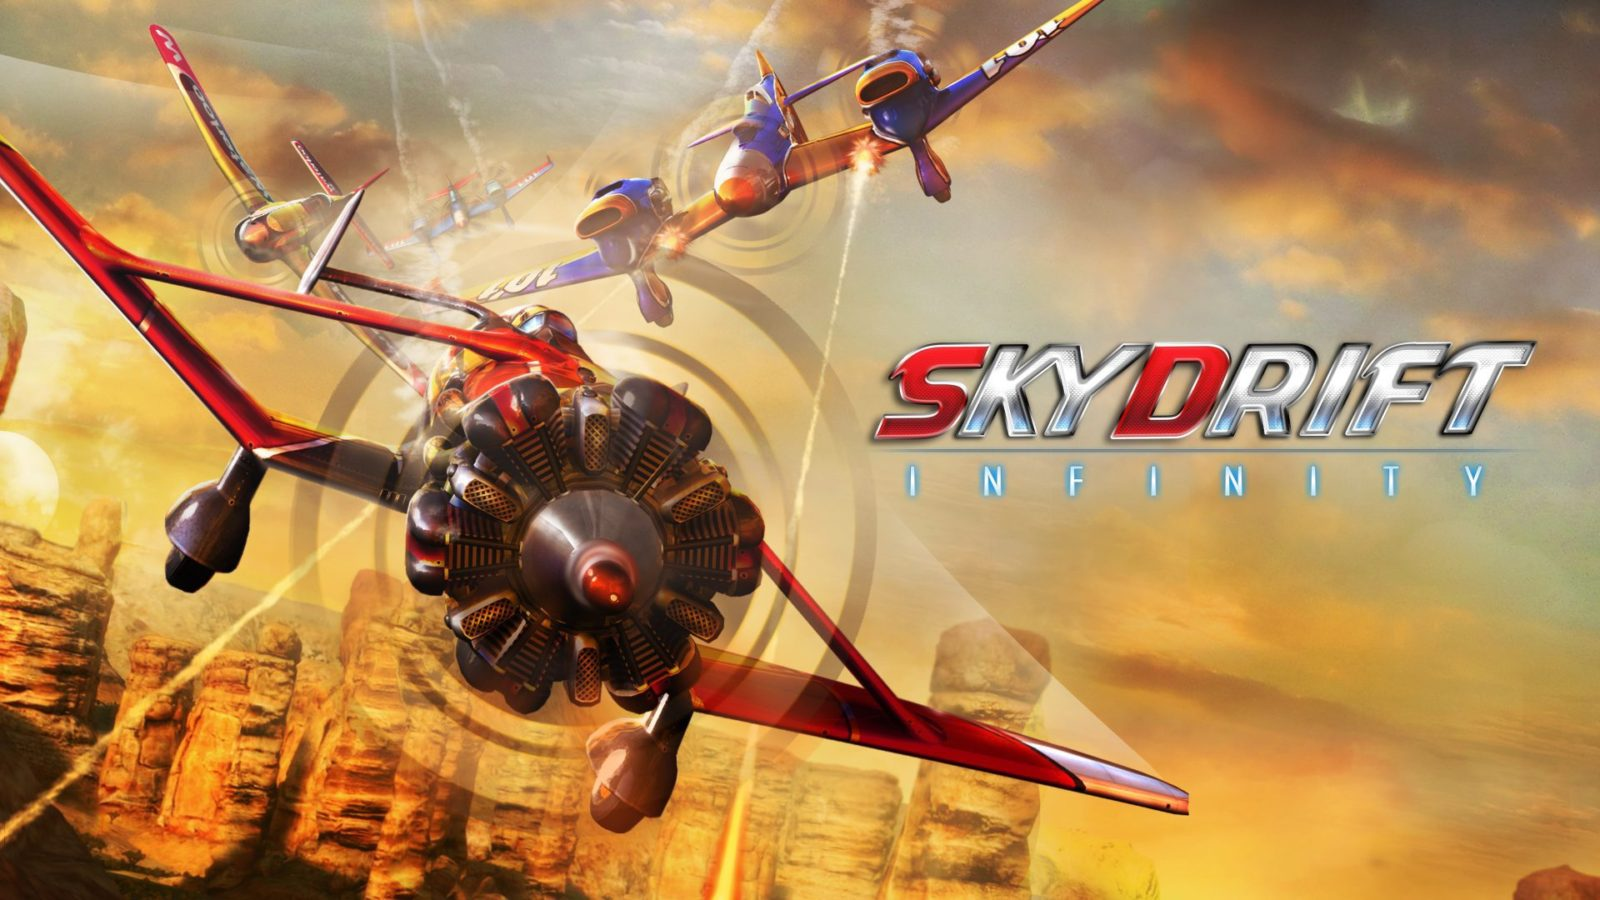 skydrift-infinity-review-(pc):-a-thrilling-airplane-racing-game